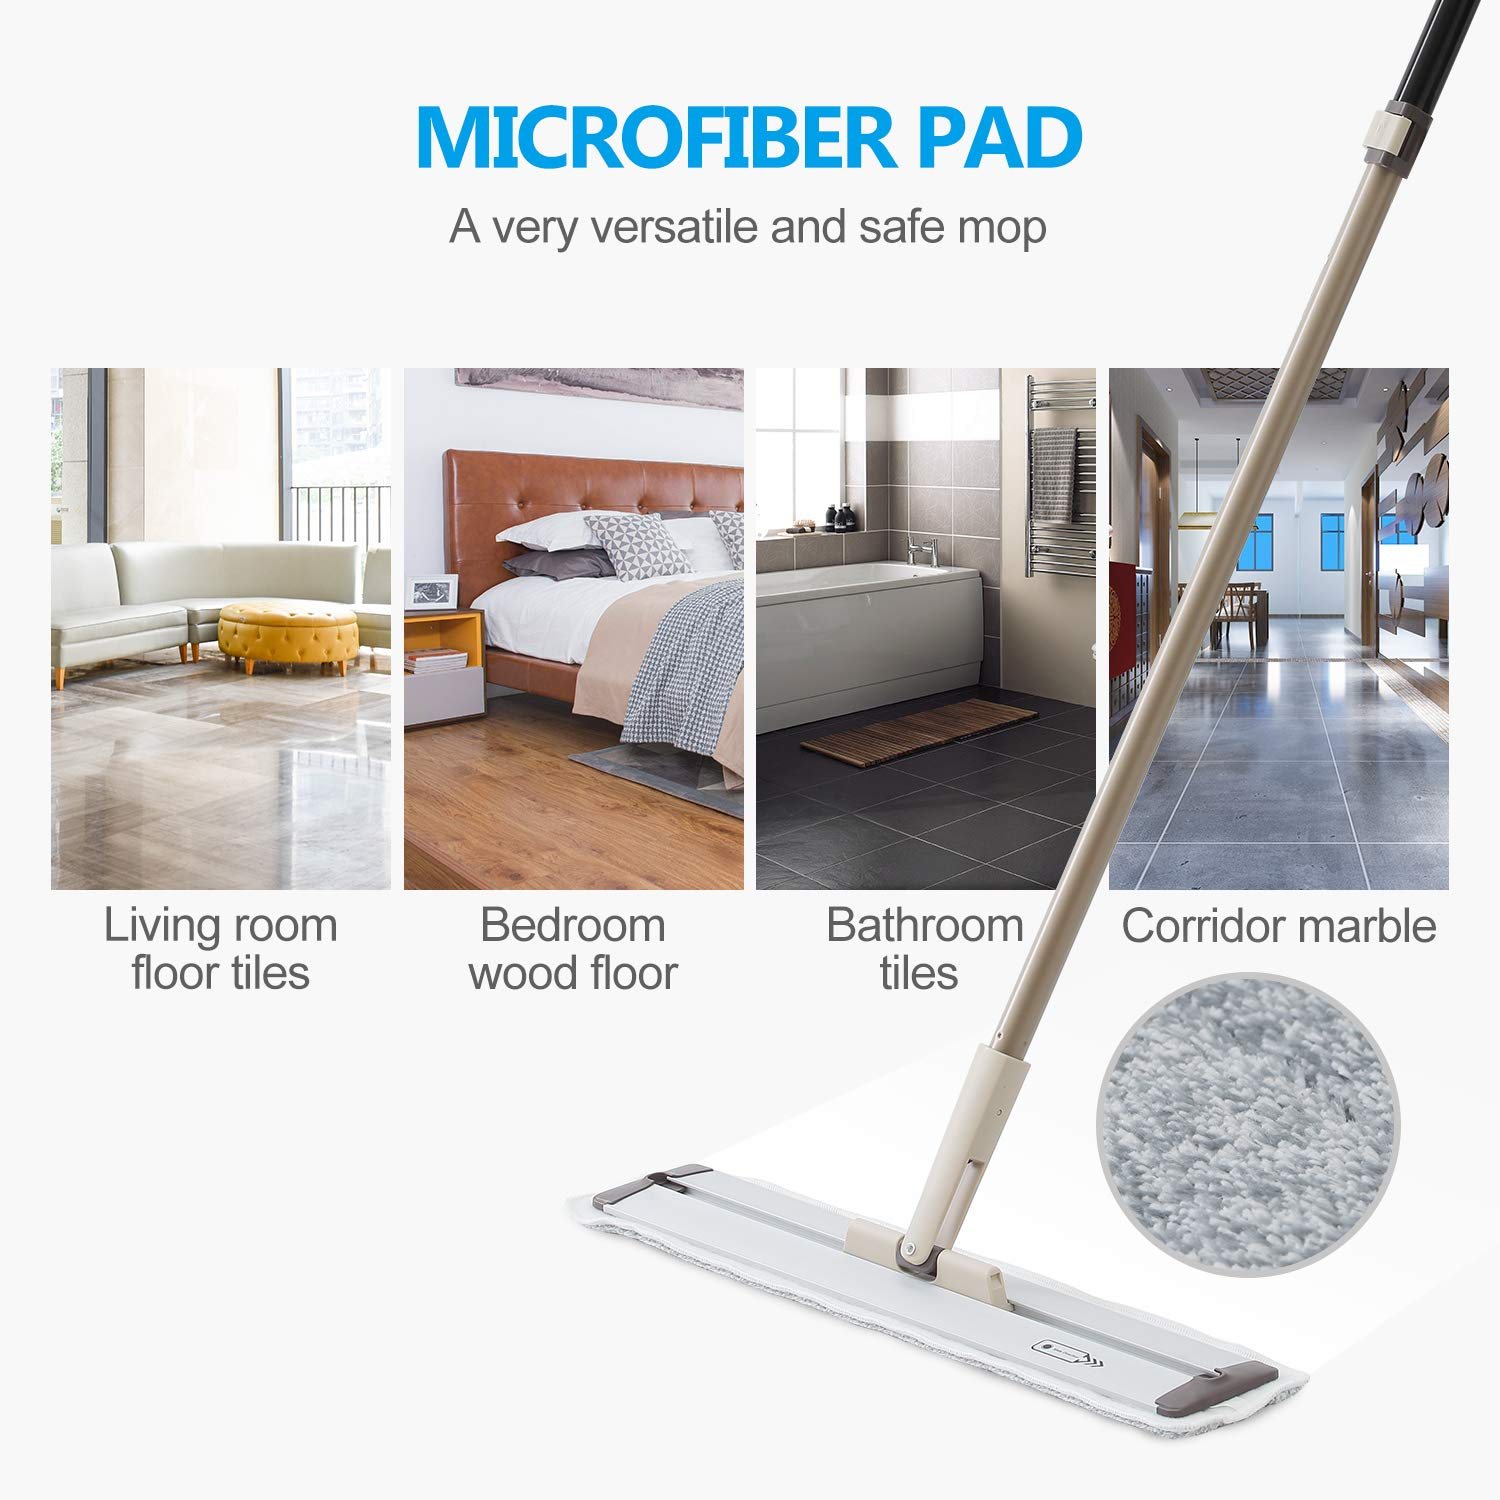 Super Decontamination pad-A Magical Flat Mop Can 360 Degree swivel-Extra A Multifunctional Scraper With Two Reusable Microfiber Pads E.yliden Rod Length Adjustable